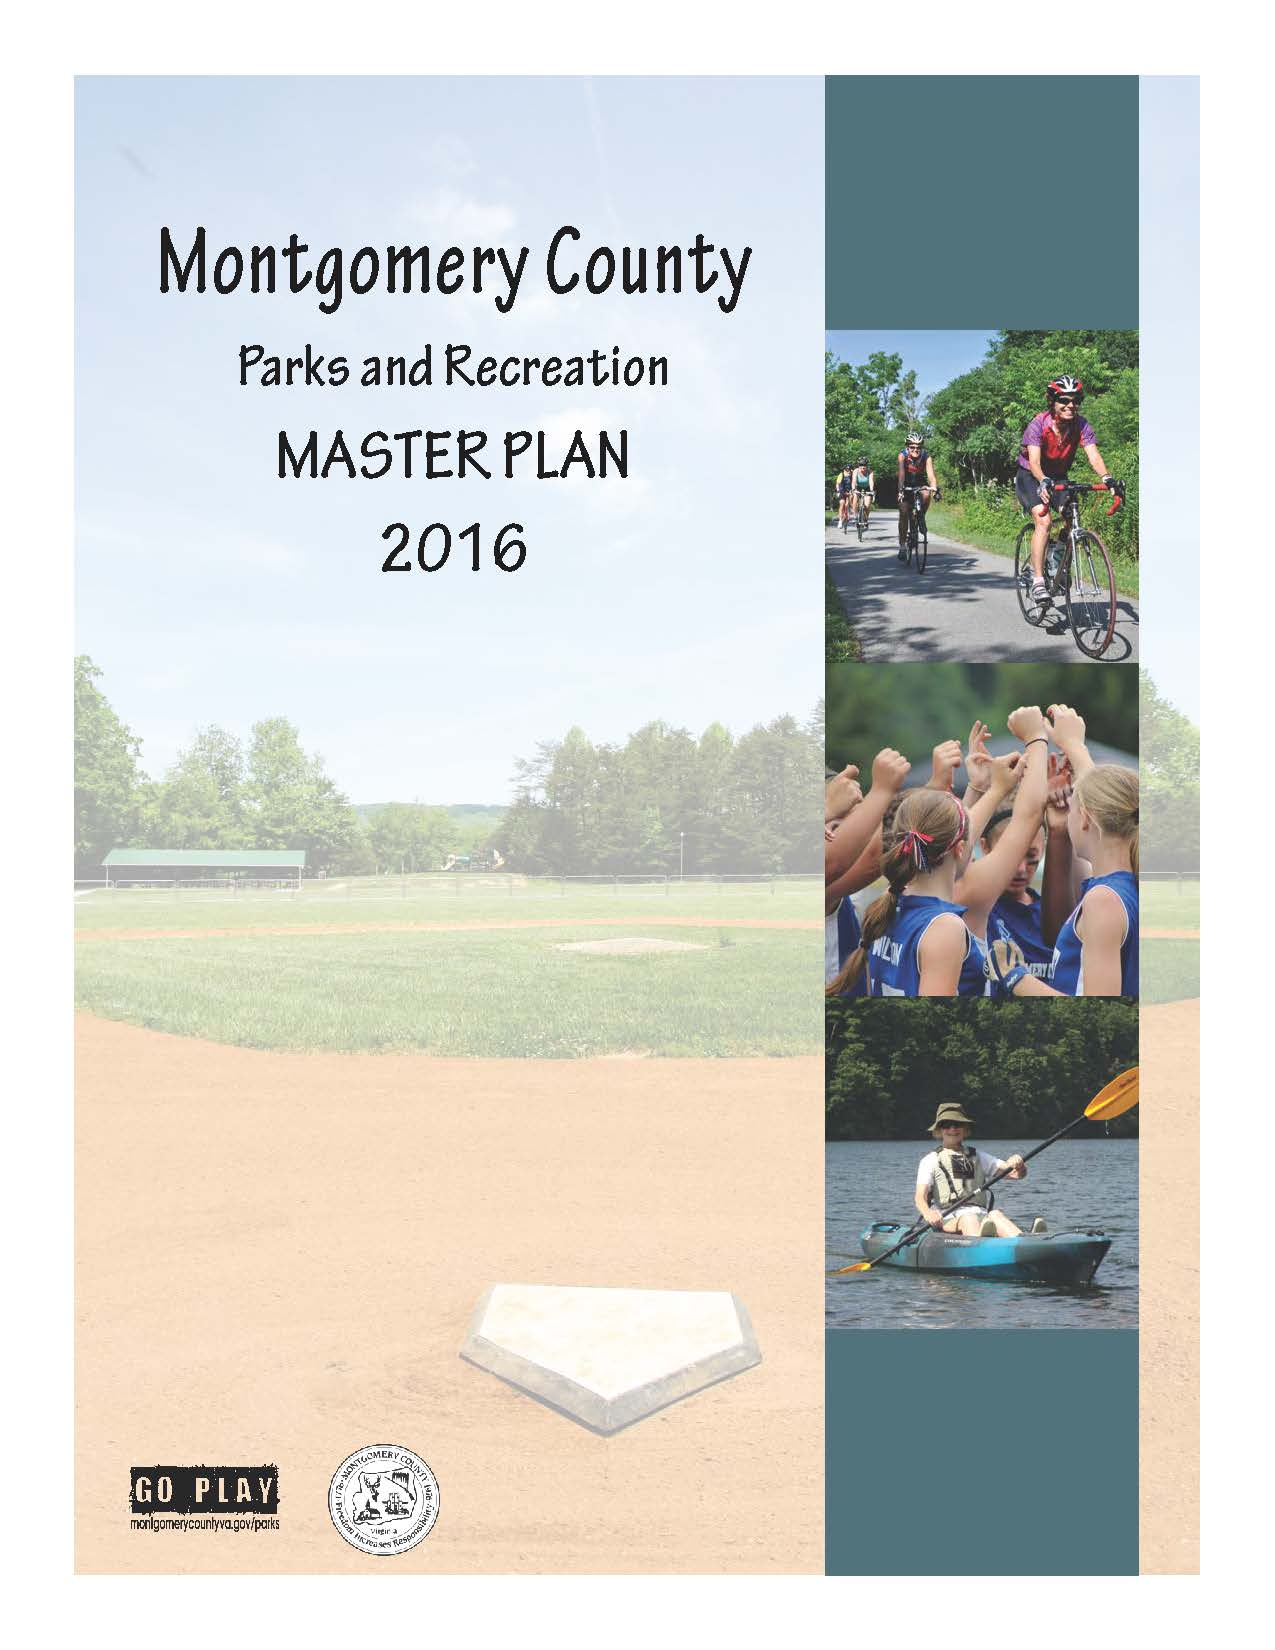 Montgomery County Parks and Recreation Master Plan